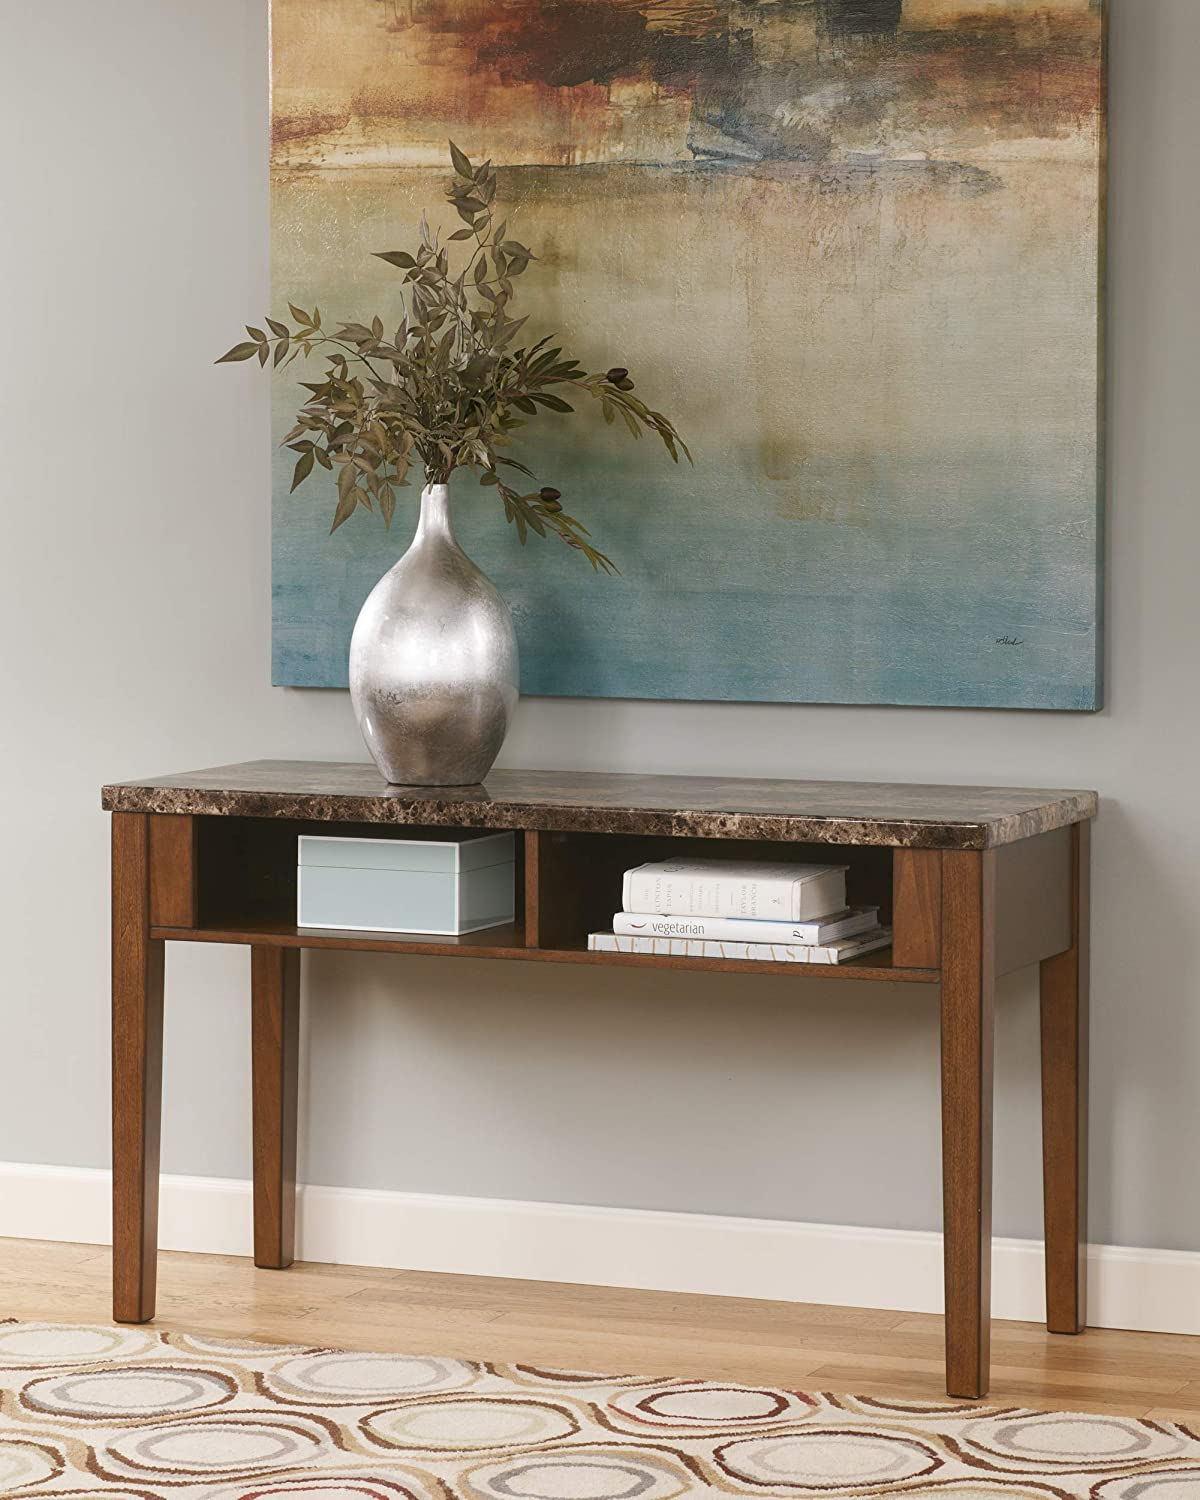 Ashley Furniture Signature Design – Theo Console Sofa Table – 2 Open Shelves – Faux Marble Top – Warm Brown